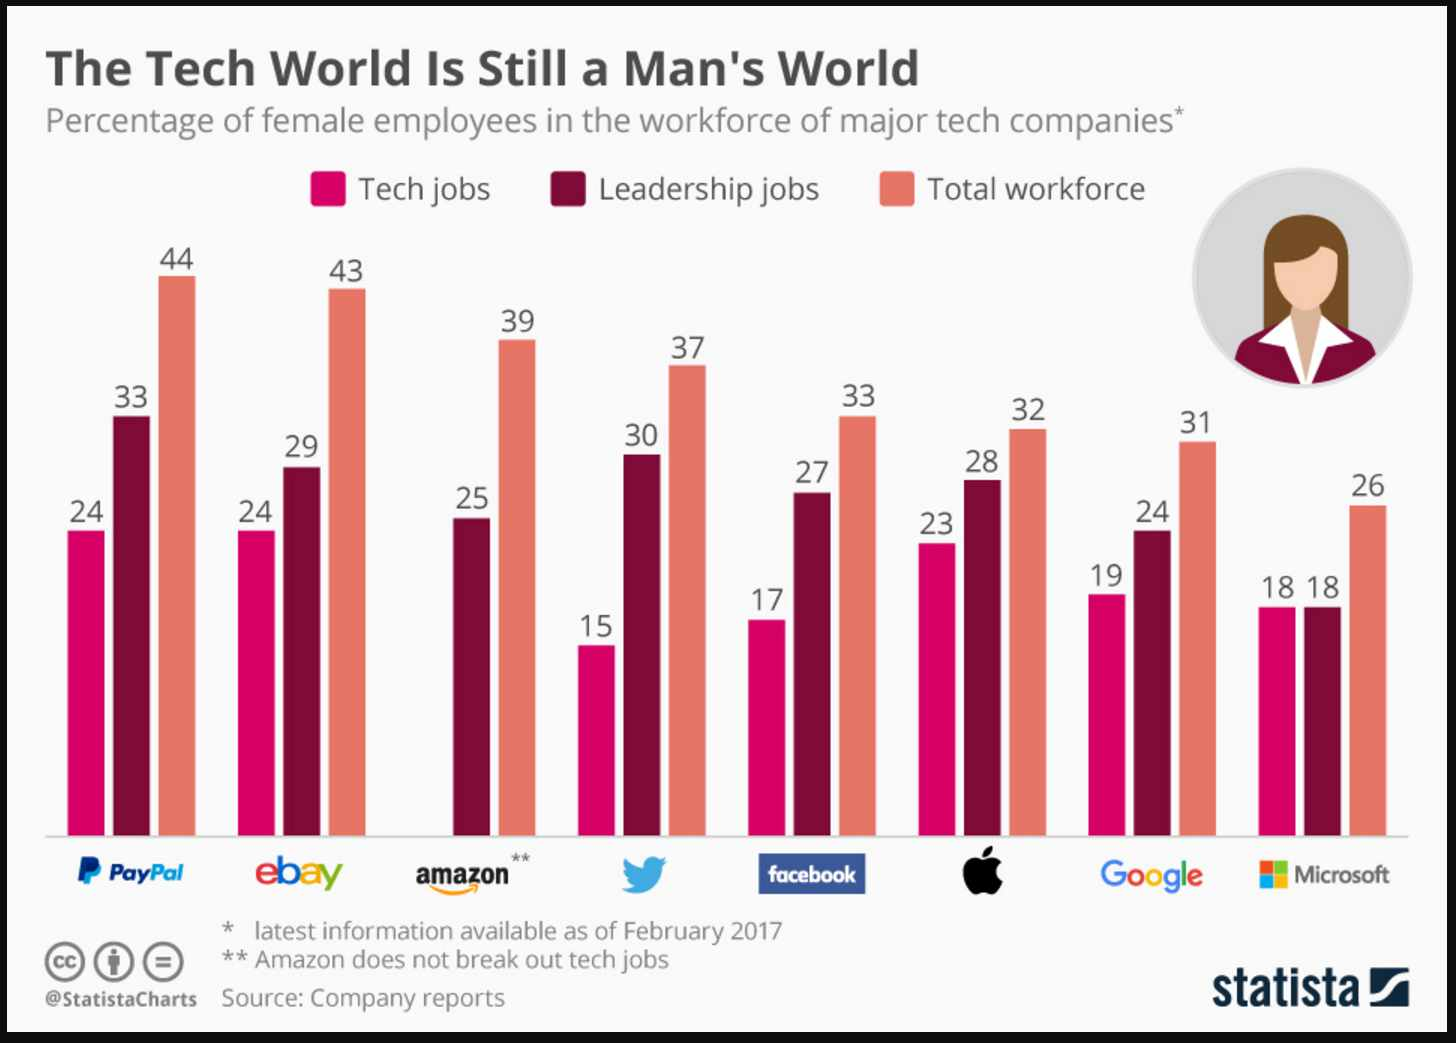 Tech is still a man's world